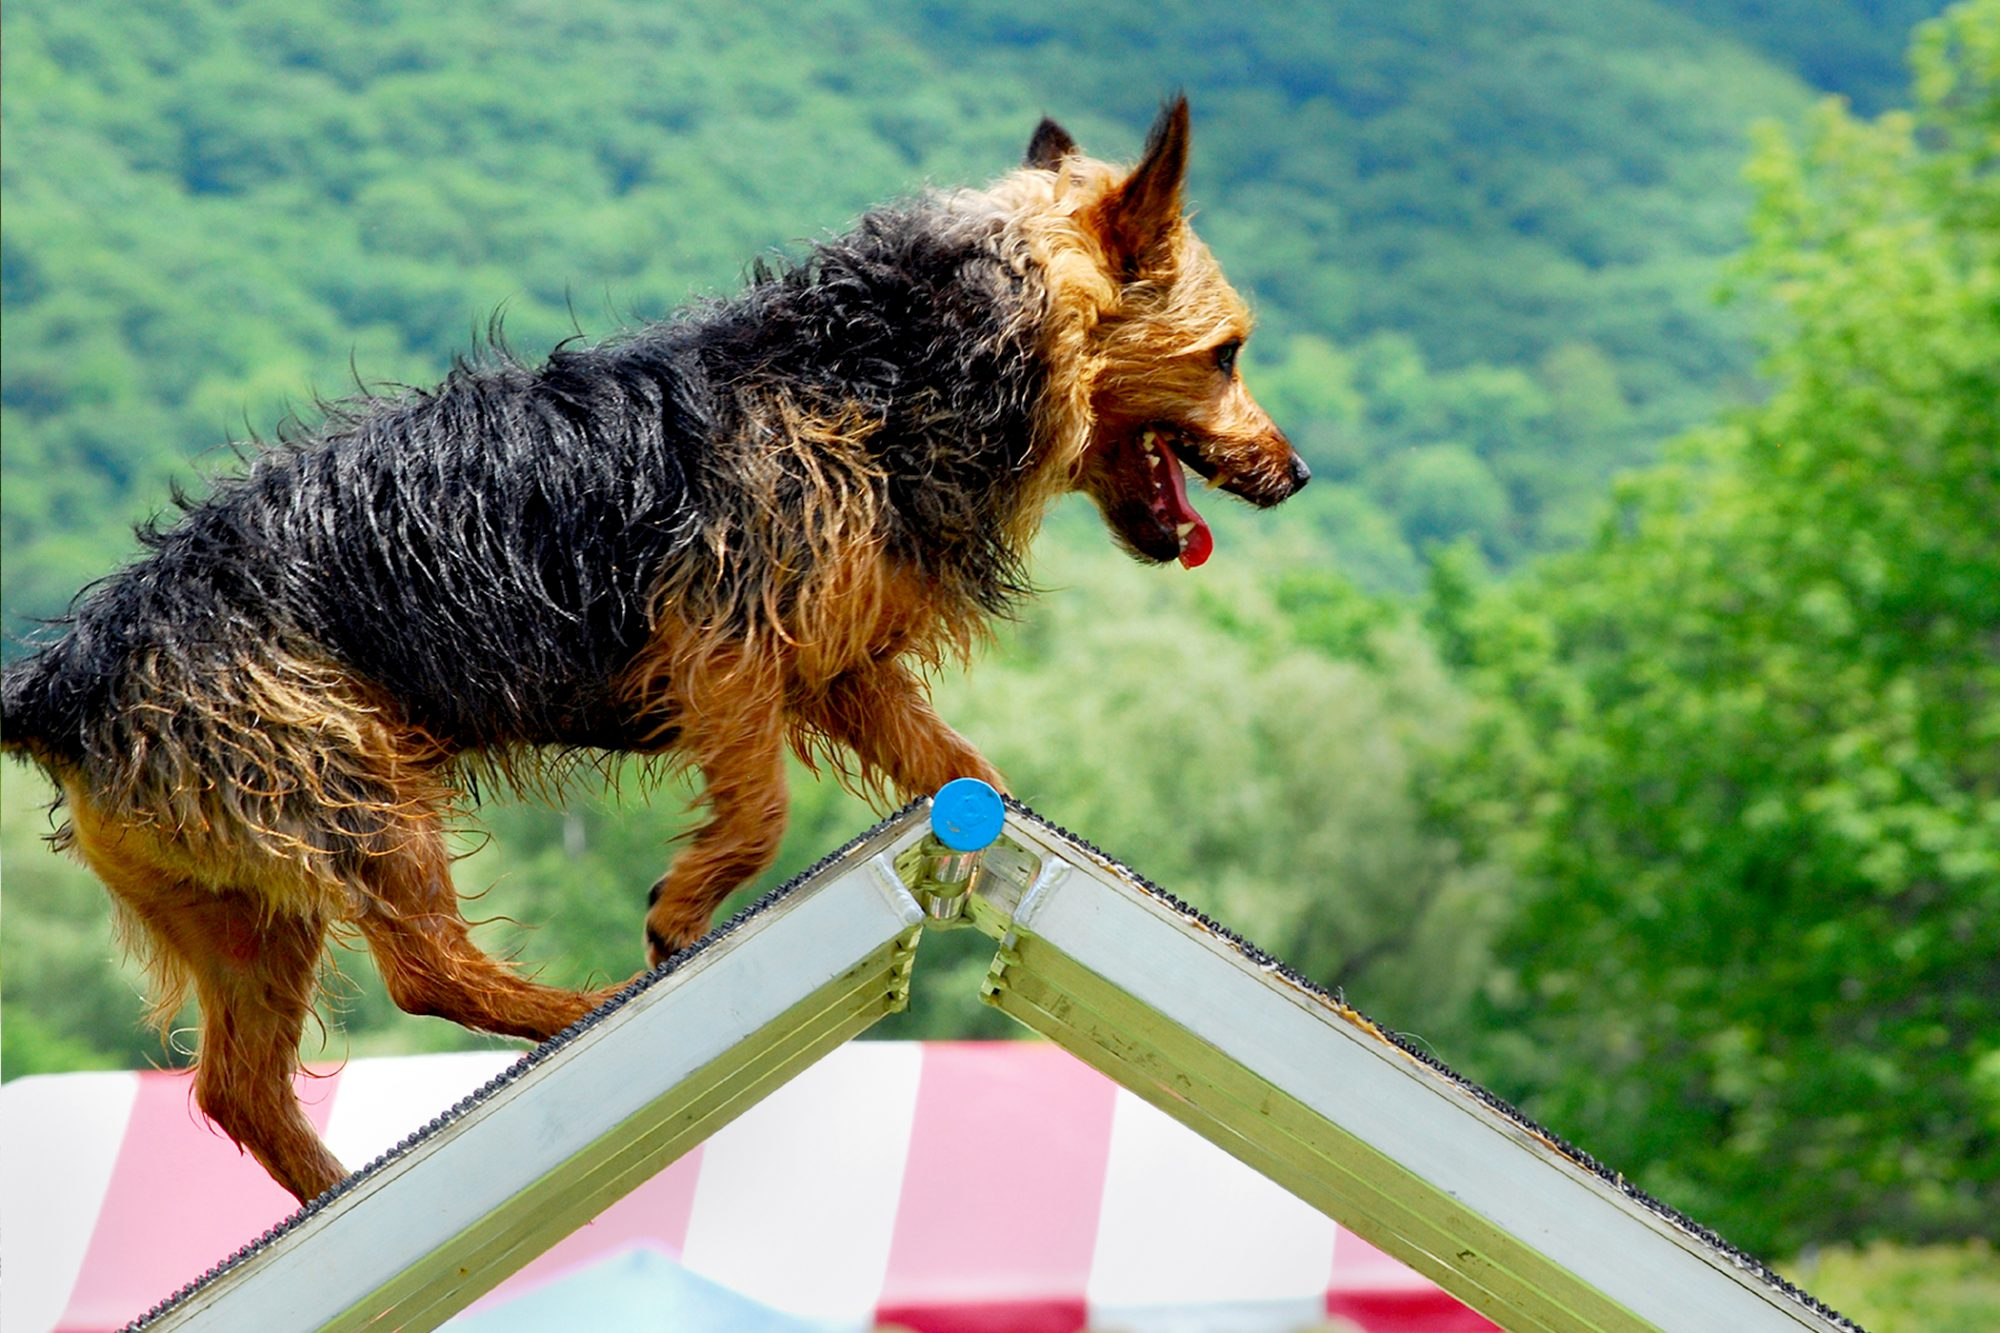 Black and tan Norwich terrier climbs agility ramp